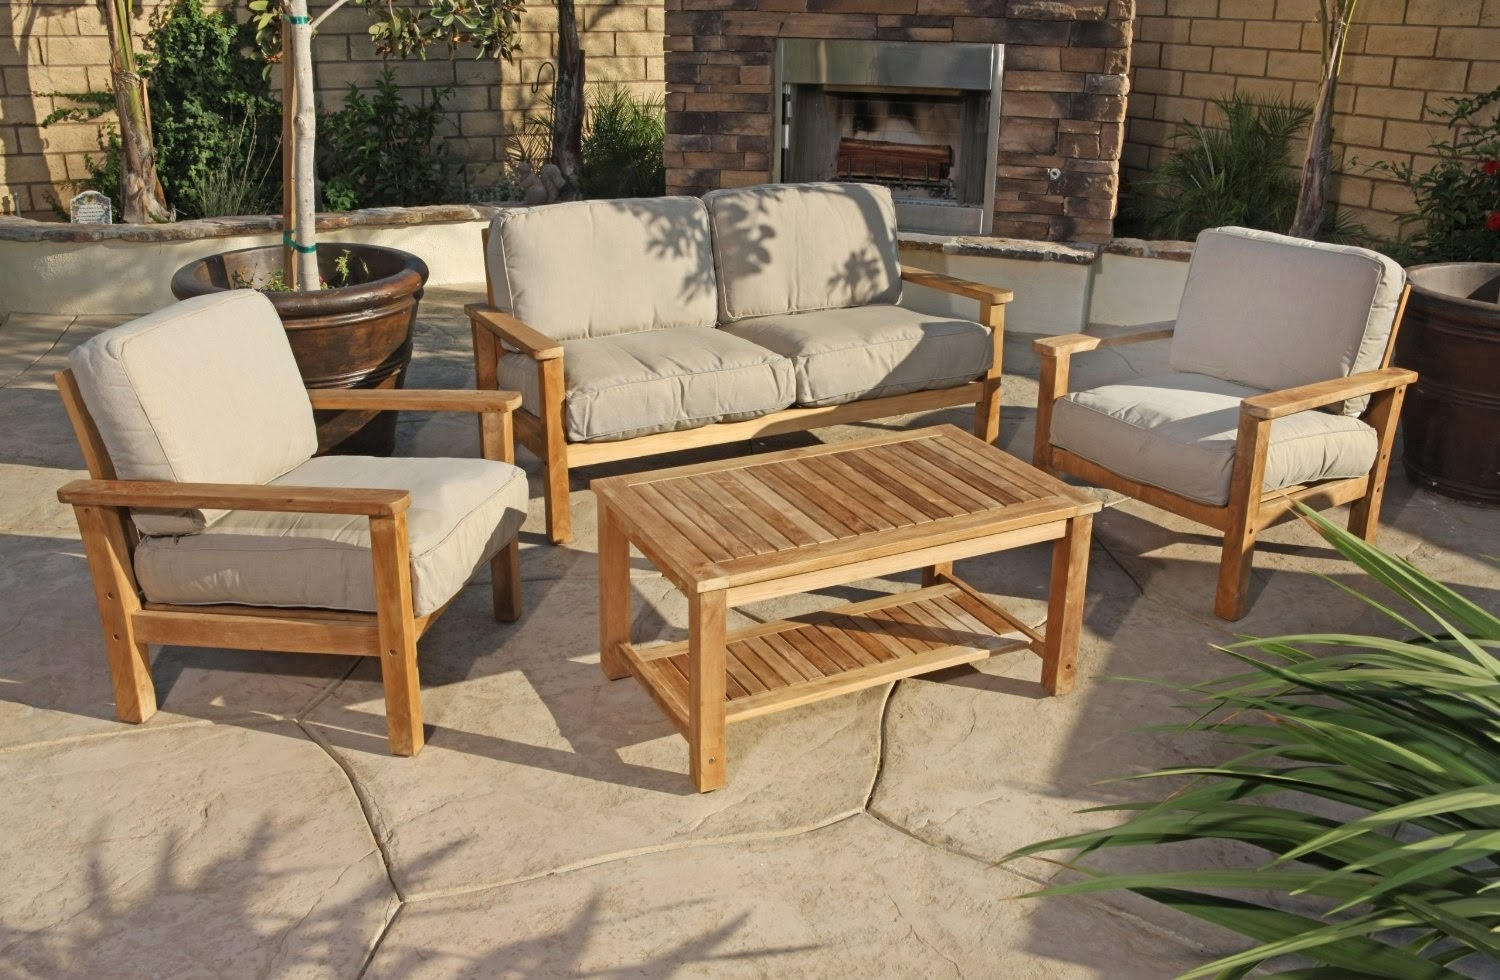 Well Known Teak Patio Conversation Sets For Patio : Teak Patio Conversation Sets Outdoor Lounge Furniture The (View 8 of 15)